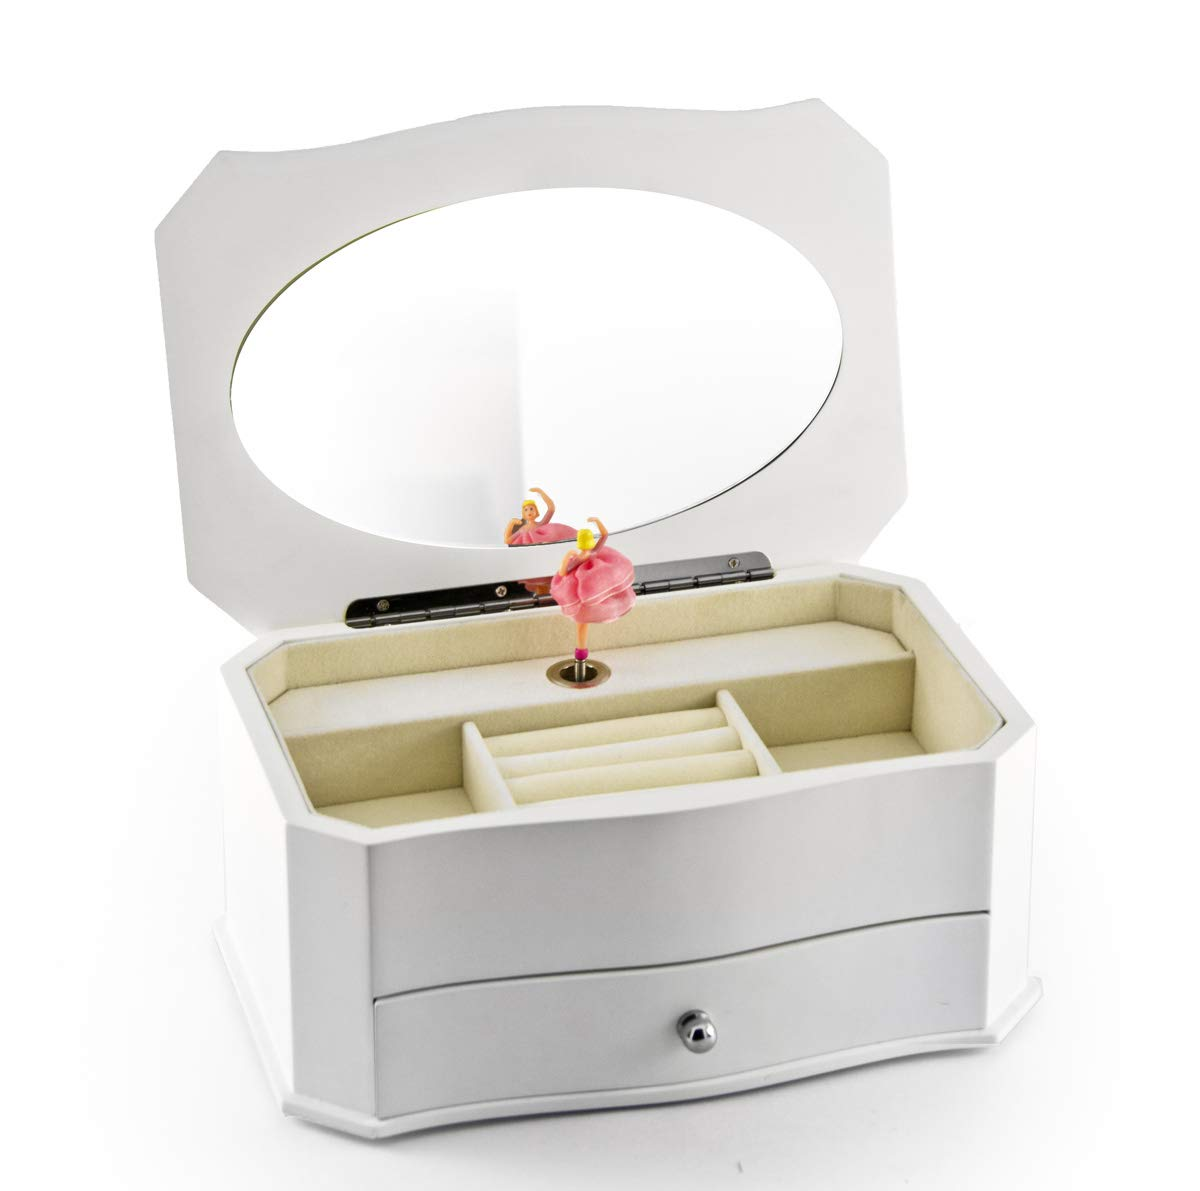 Spacious Matte White 18 Note Ballerina Musical Jewelry Box with Mirror - Over 400 Song Choices - Amazing Grace, Judy Collins